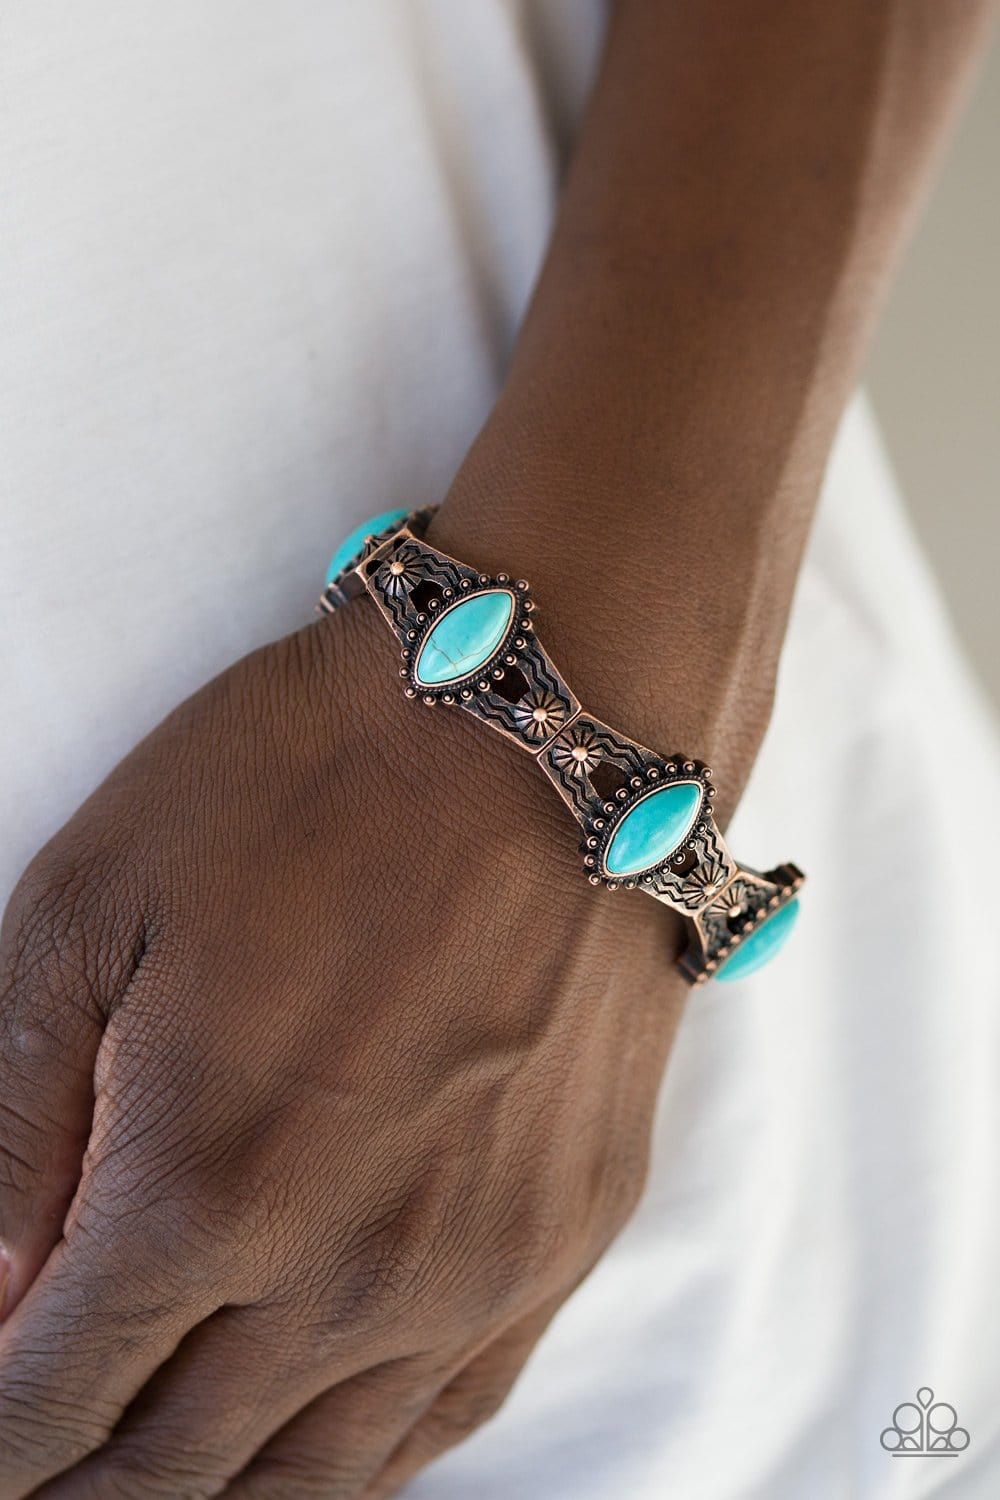 Majestic Deserts - Copper: Paparazzi Accessories - Jewels N' Thingz Boutique